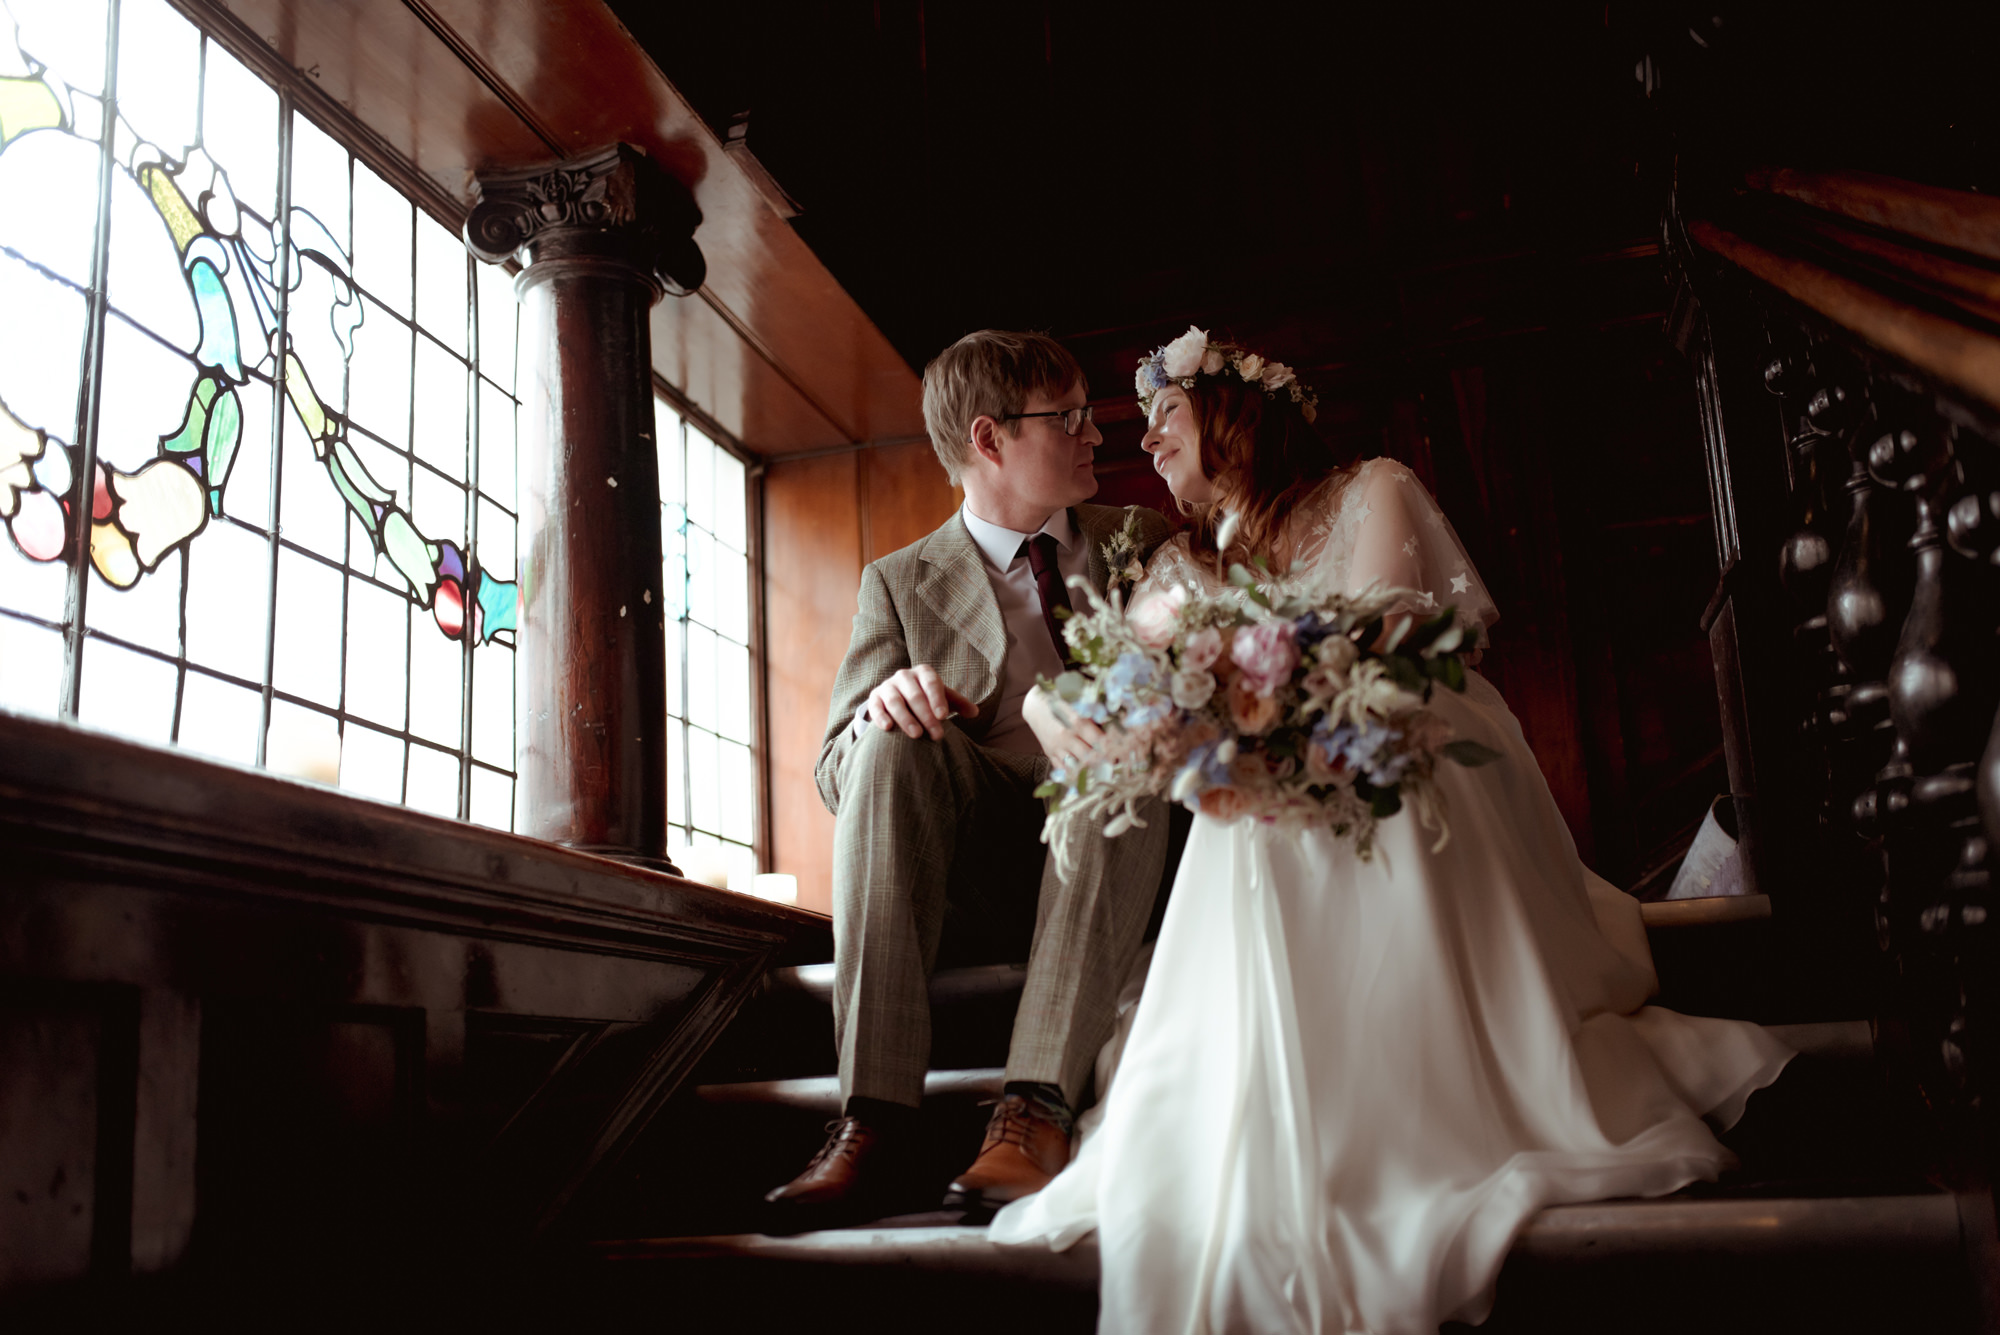 vintage-wedding-photography-glasgow-city.jpg